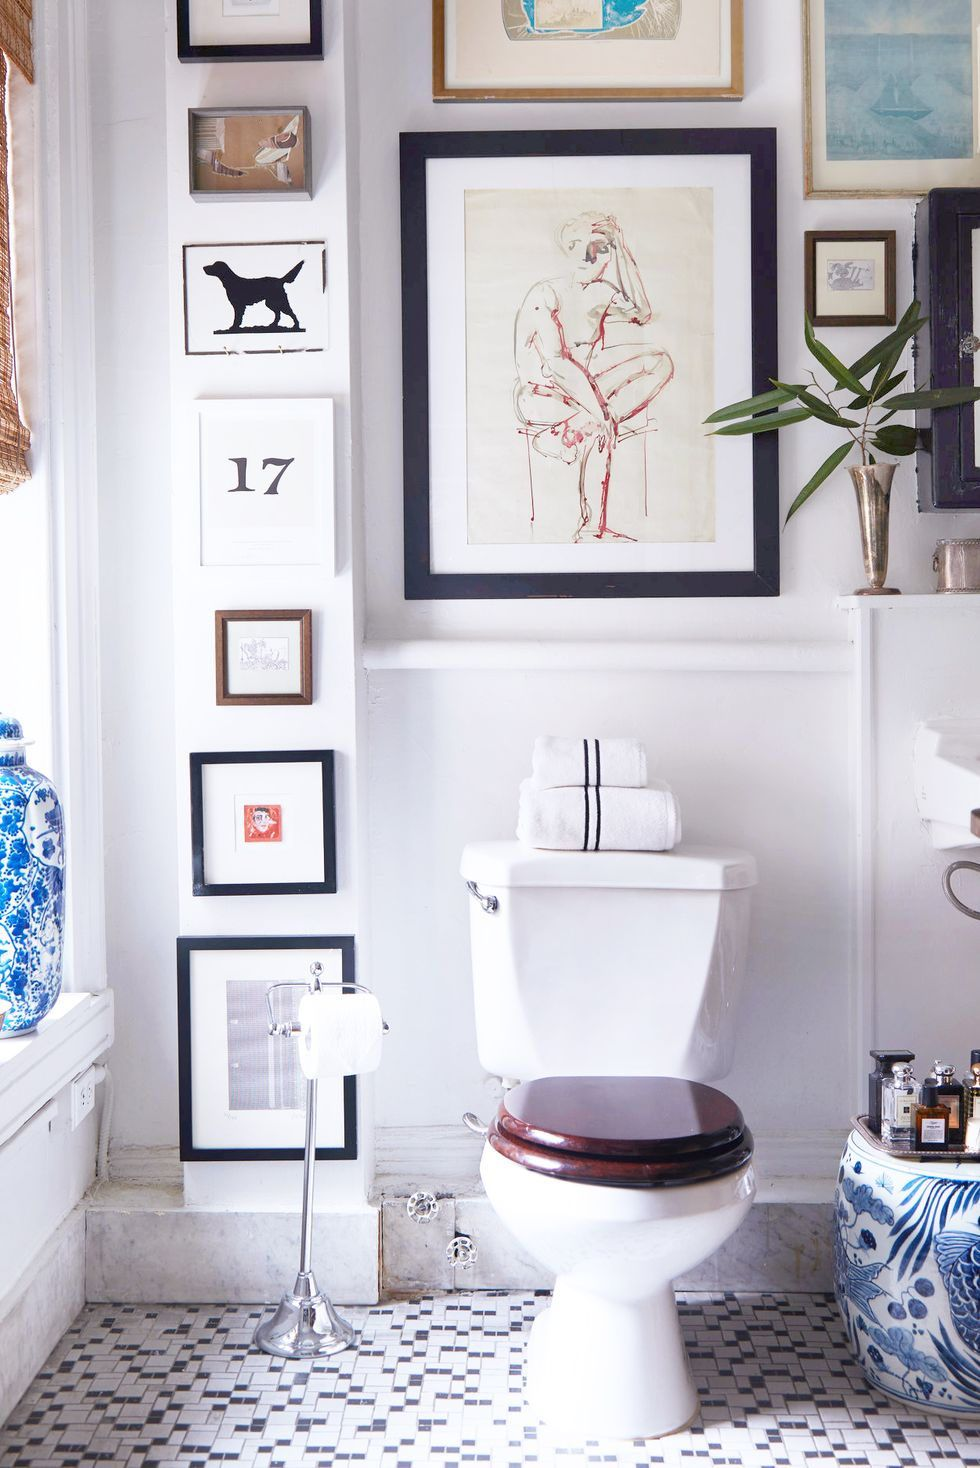 50 Easy Decor Ideas To Make Over A Room In A Day In 2020